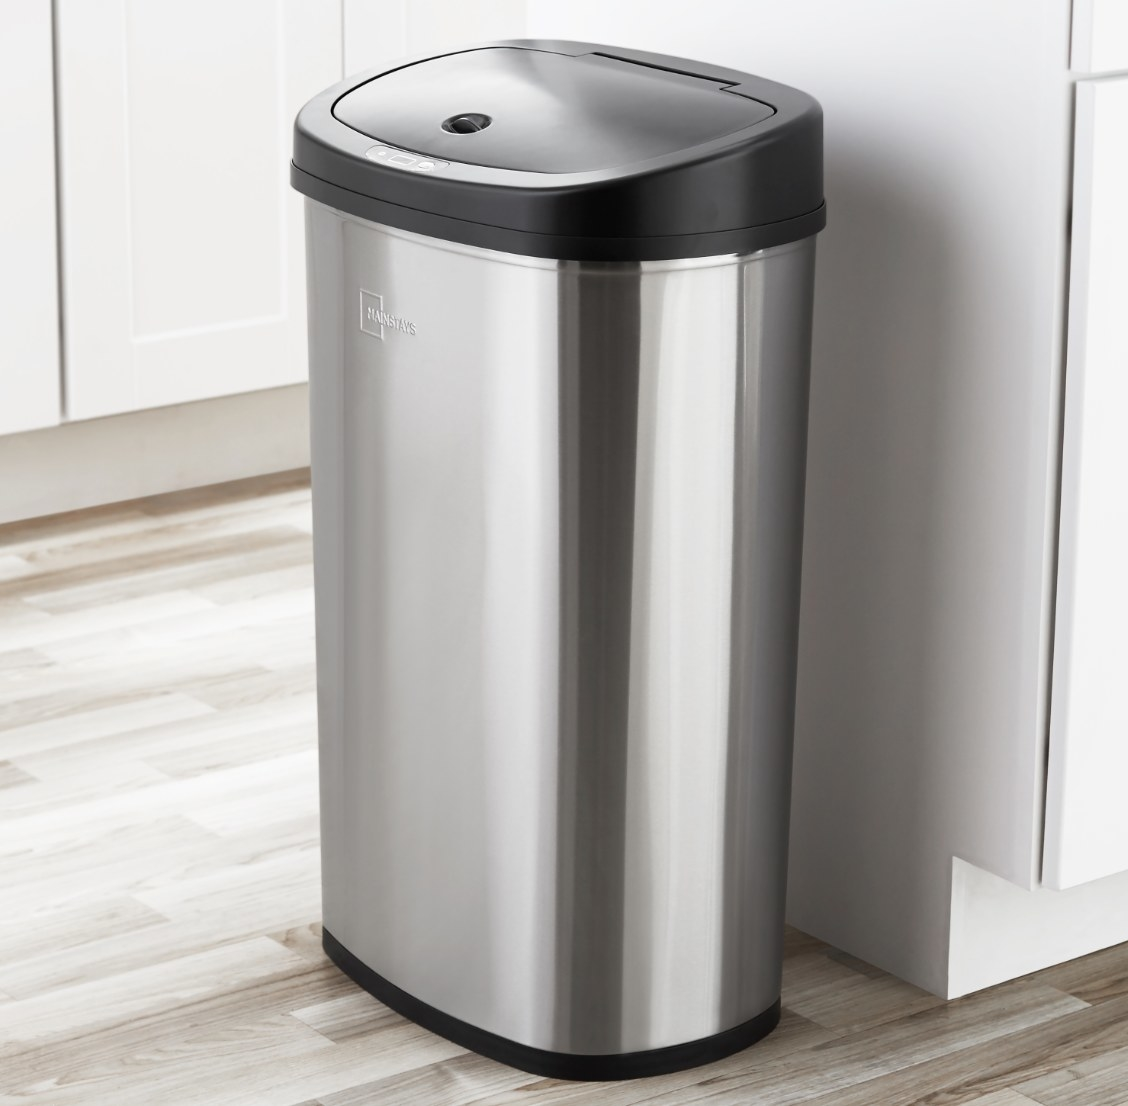 The motion sensor trash can in stainless steel